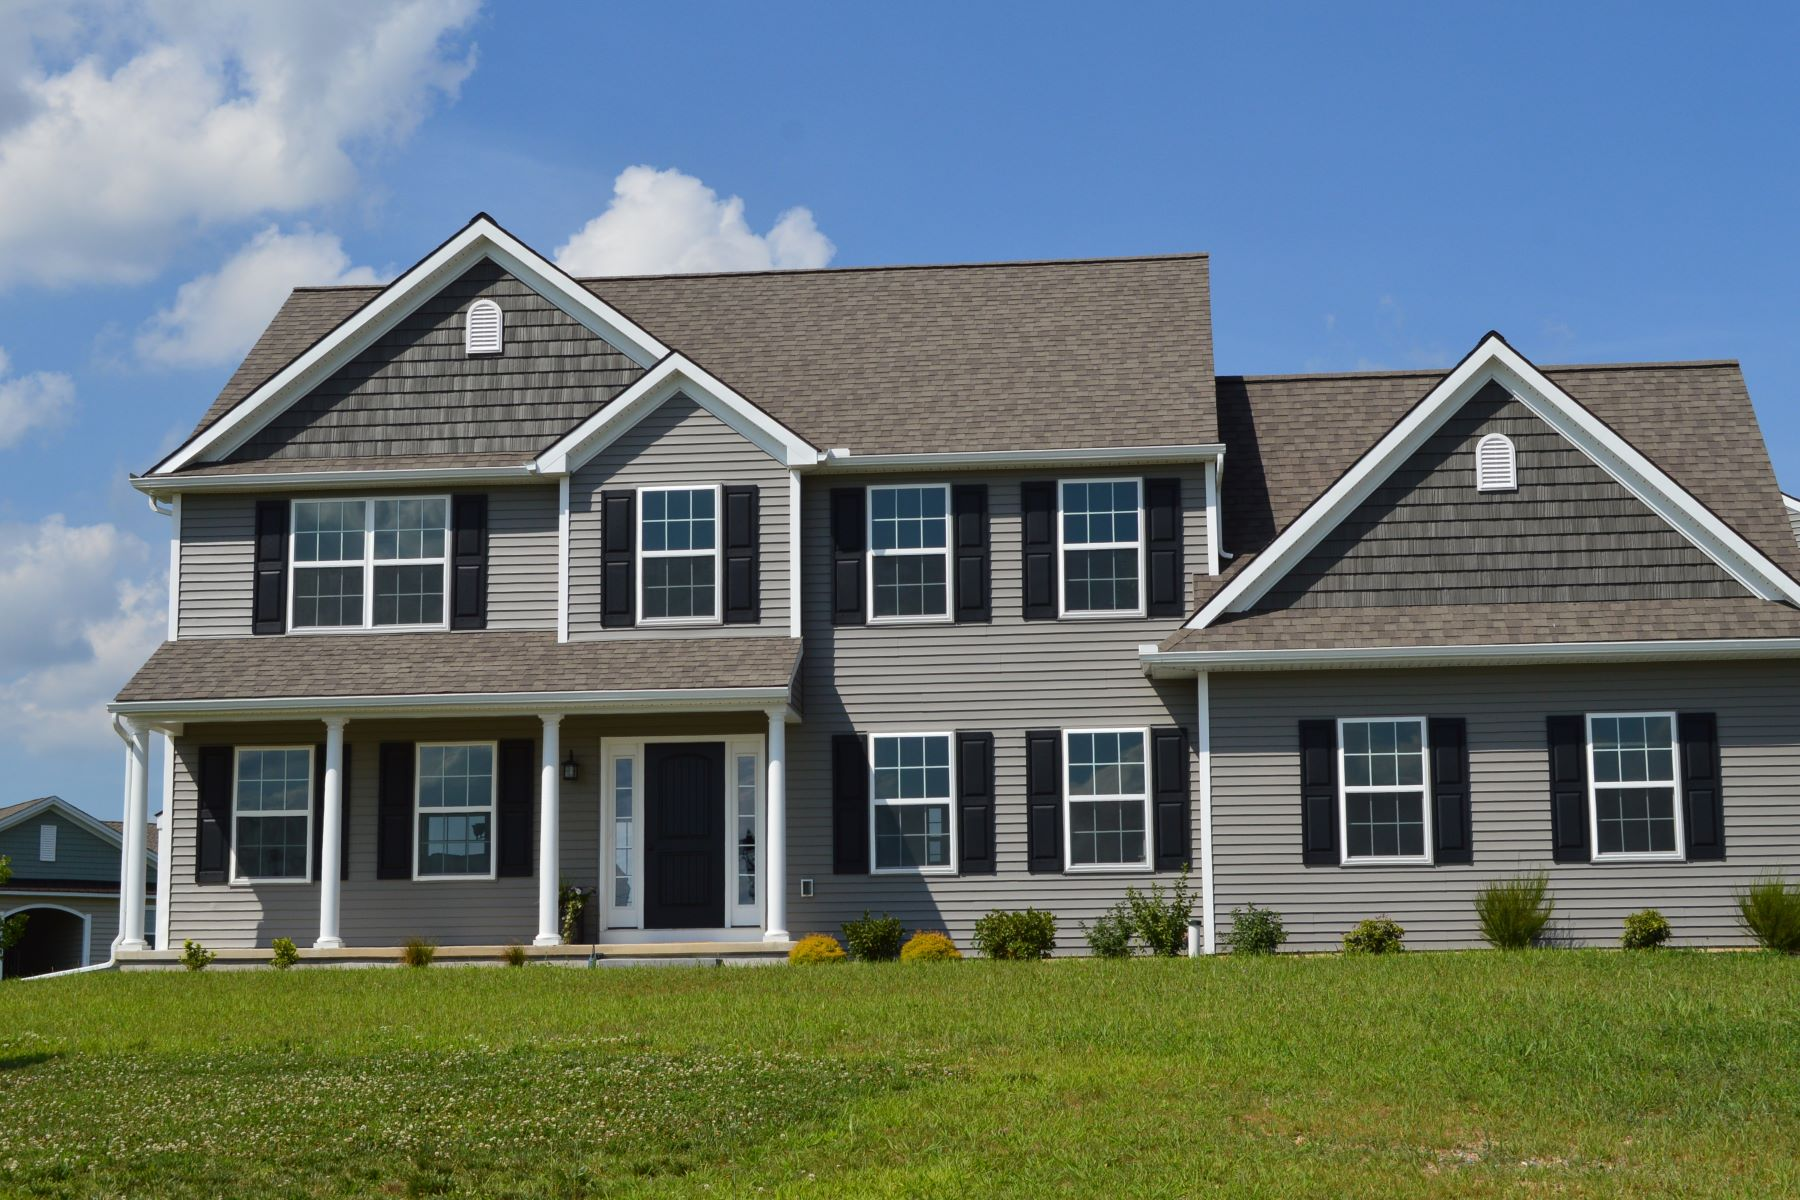 Single Family Homes for Sale at 801 Westbrooke Drive Lot 109 Elizabethtown, Pennsylvania 17022 United States